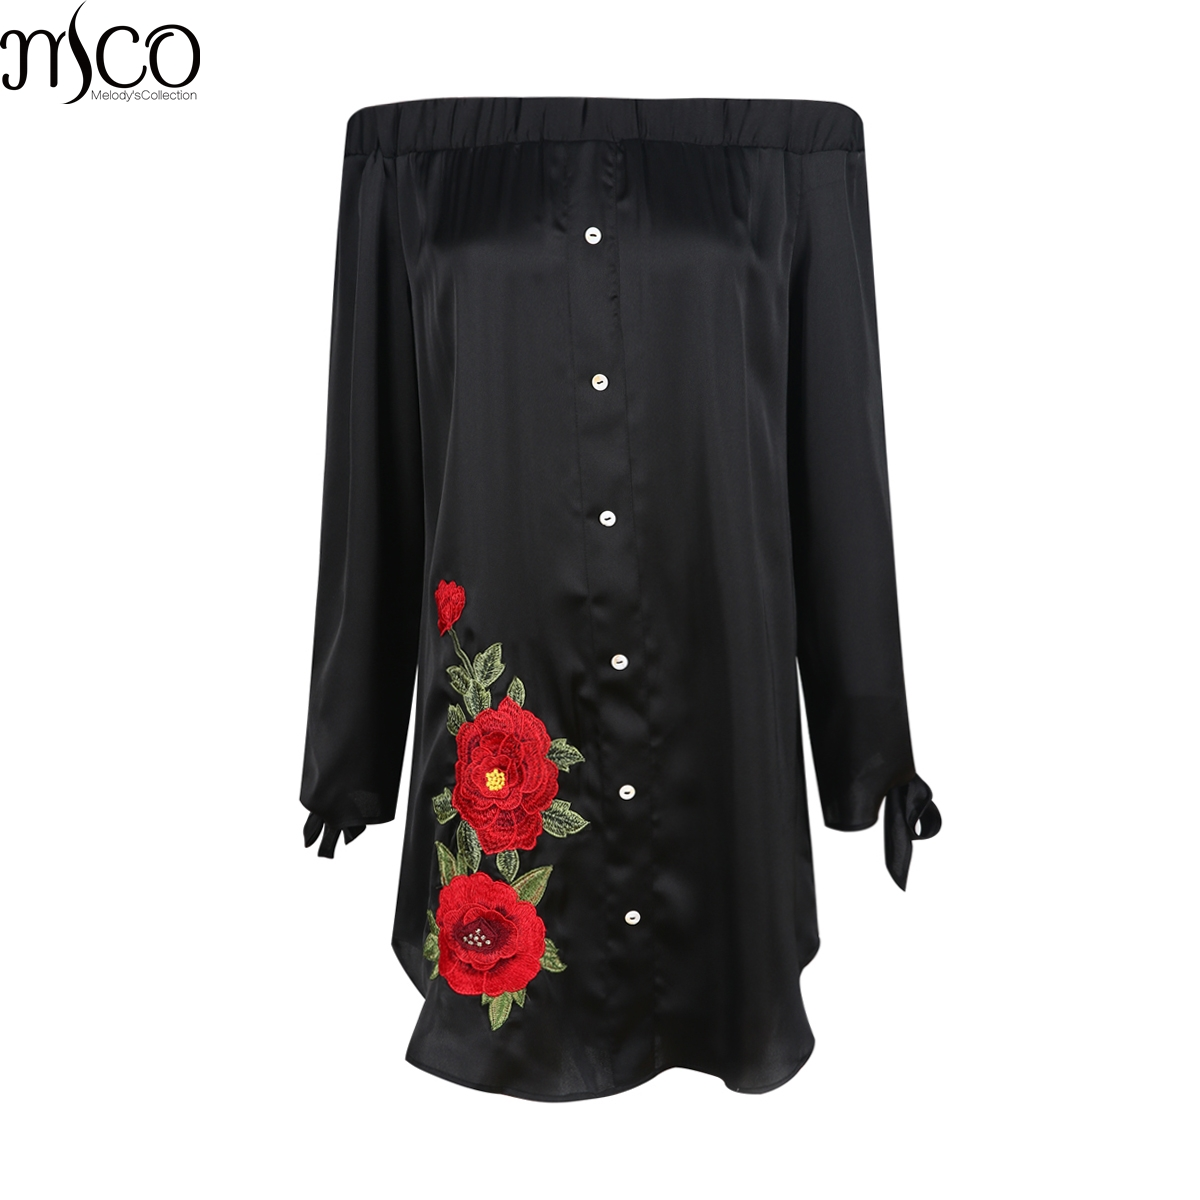 MCO <font><b>Sexy</b></font> Off Shoulder Floral Emboridery <font><b>Plus</b></font> <font><b>Size</b></font> Shirt <font><b>Dress</b></font> Oversized Mini <font><b>Dresses</b></font> Black Bardot Big <font><b>Women</b></font> <font><b>Clothing</b></font> <font><b>5xl</b></font> <font><b>6xl</b></font> 7xl image